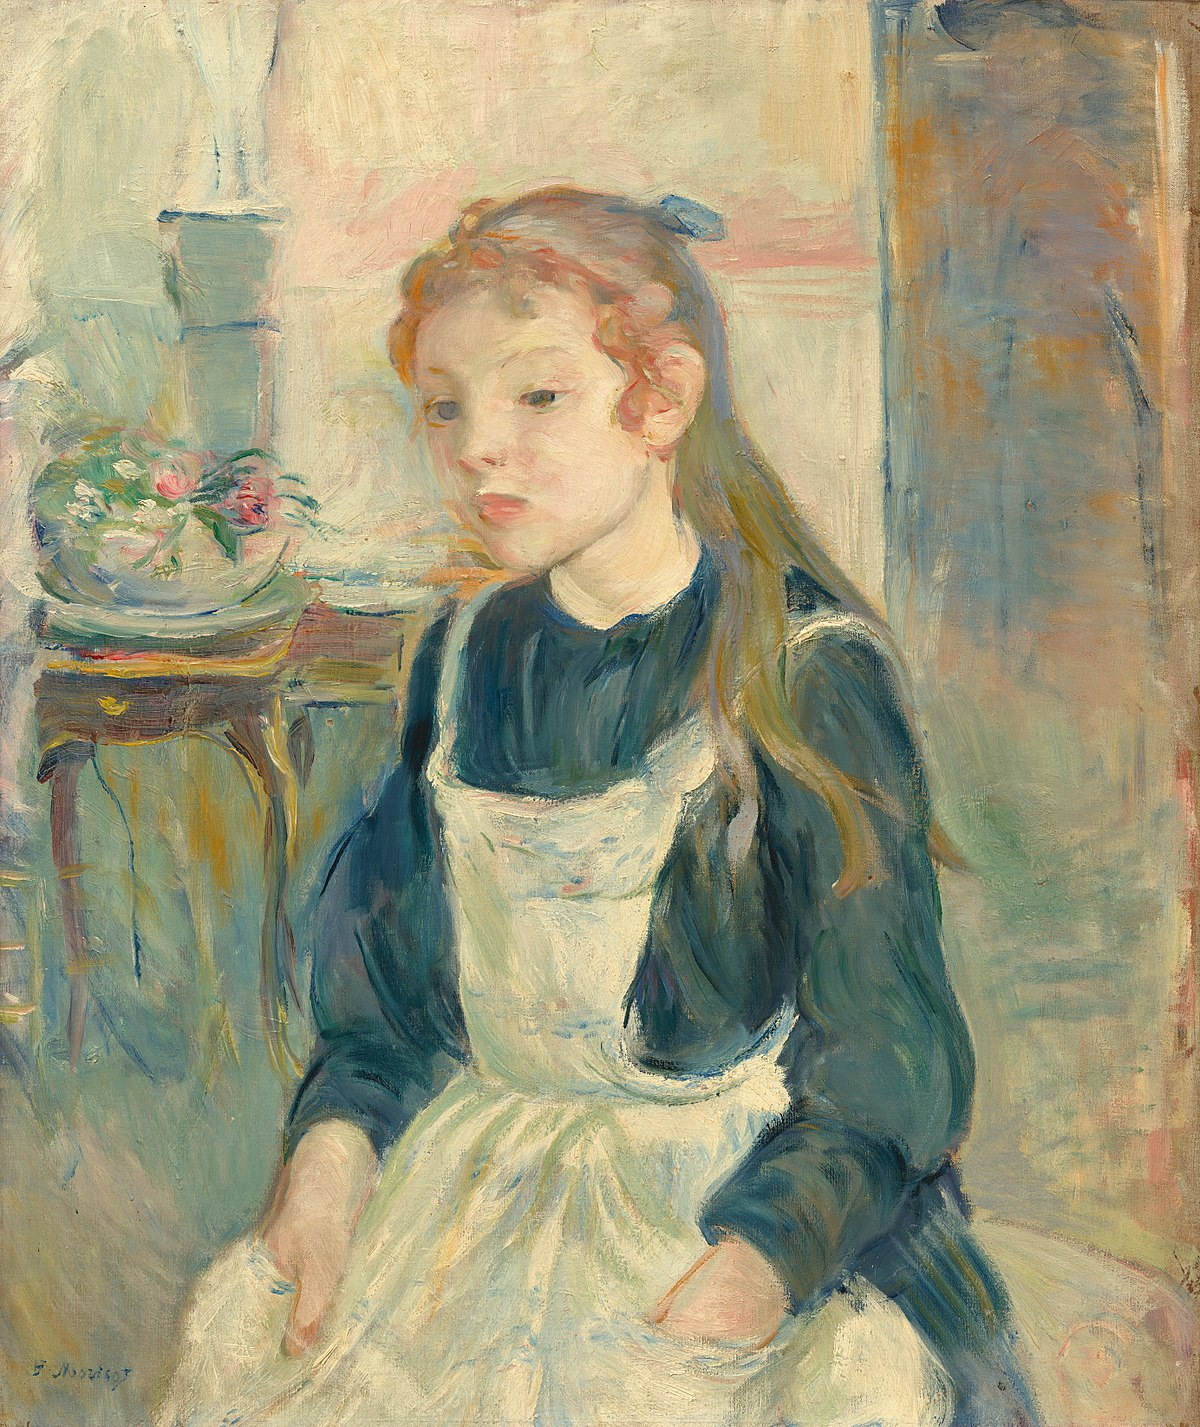 Young Girl with an Apron - Wikidata